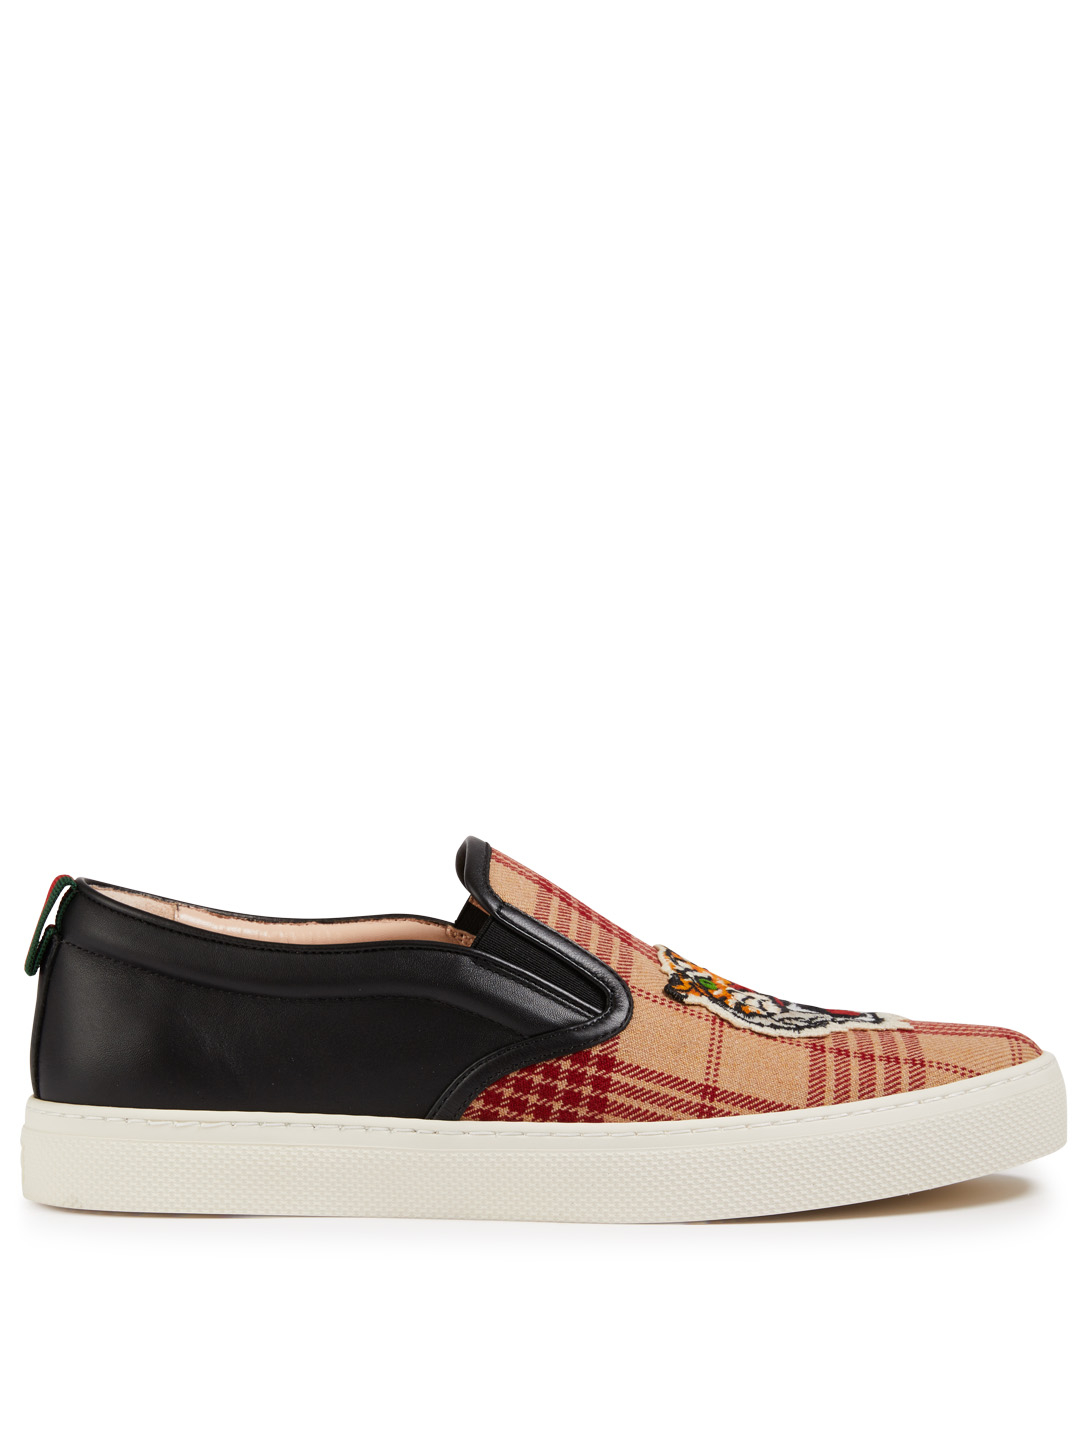 903d193ed GUCCI Dublin Slip-On Plaid Sneakers With Tiger Patch Men's Black ...